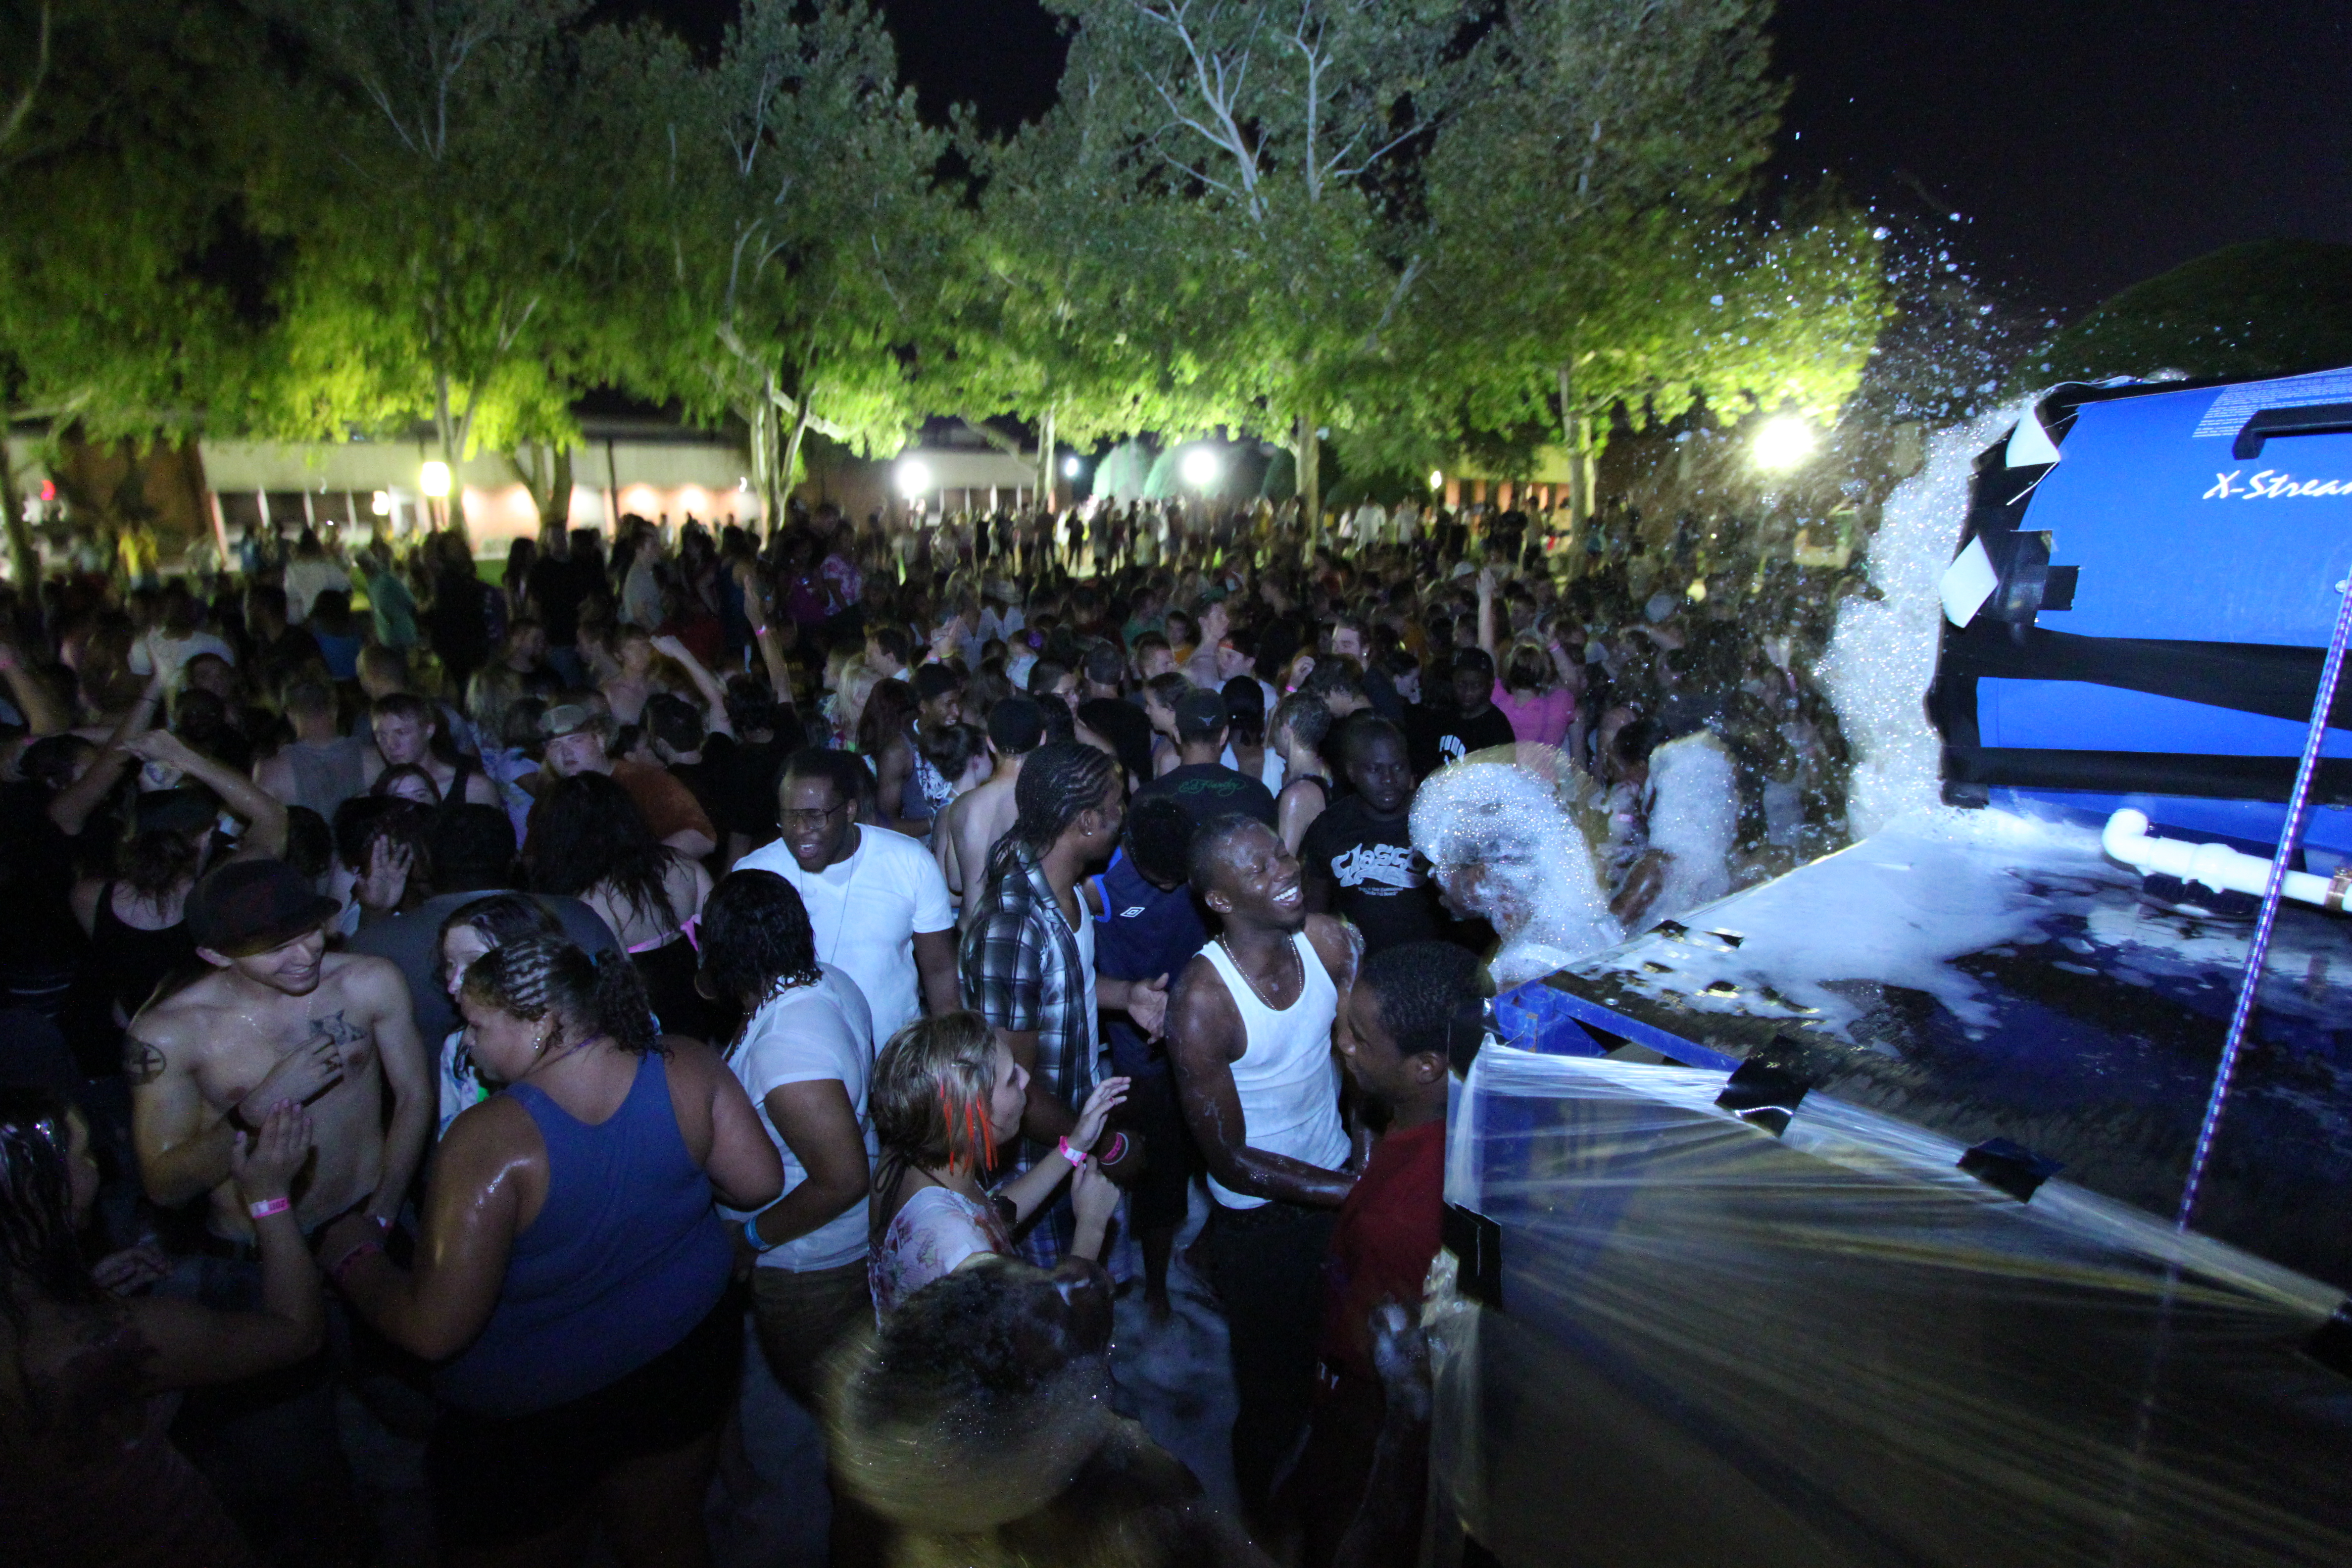 Courtesy photo: Groups of students crowd around the Fine Yards Courtyard during the Foam Dance Party. The event, which had been at Cameron for nearly a decade, was discontinued for the Fall 2014 semester.